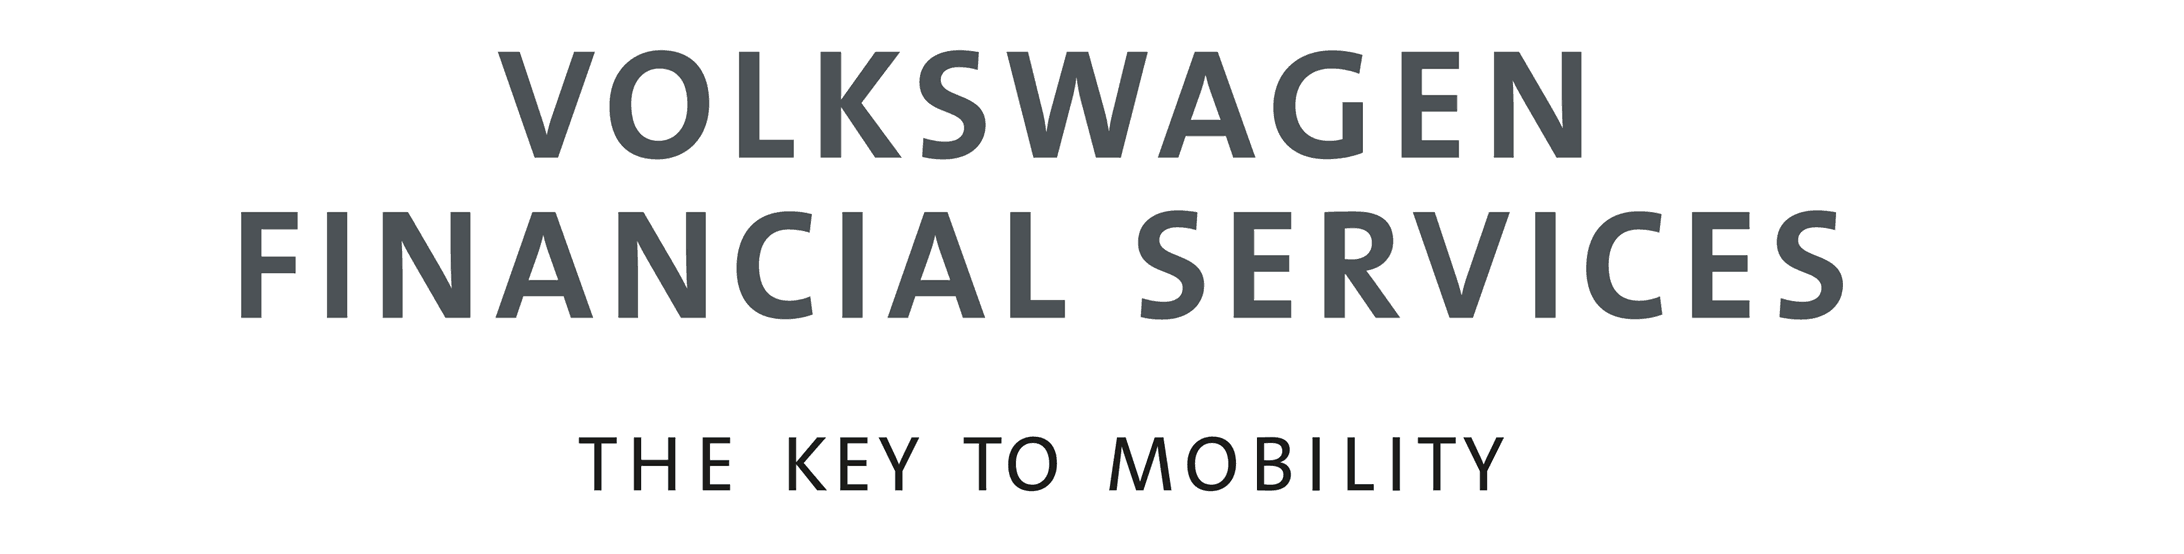 Financial Services Volkswagen Financial Services